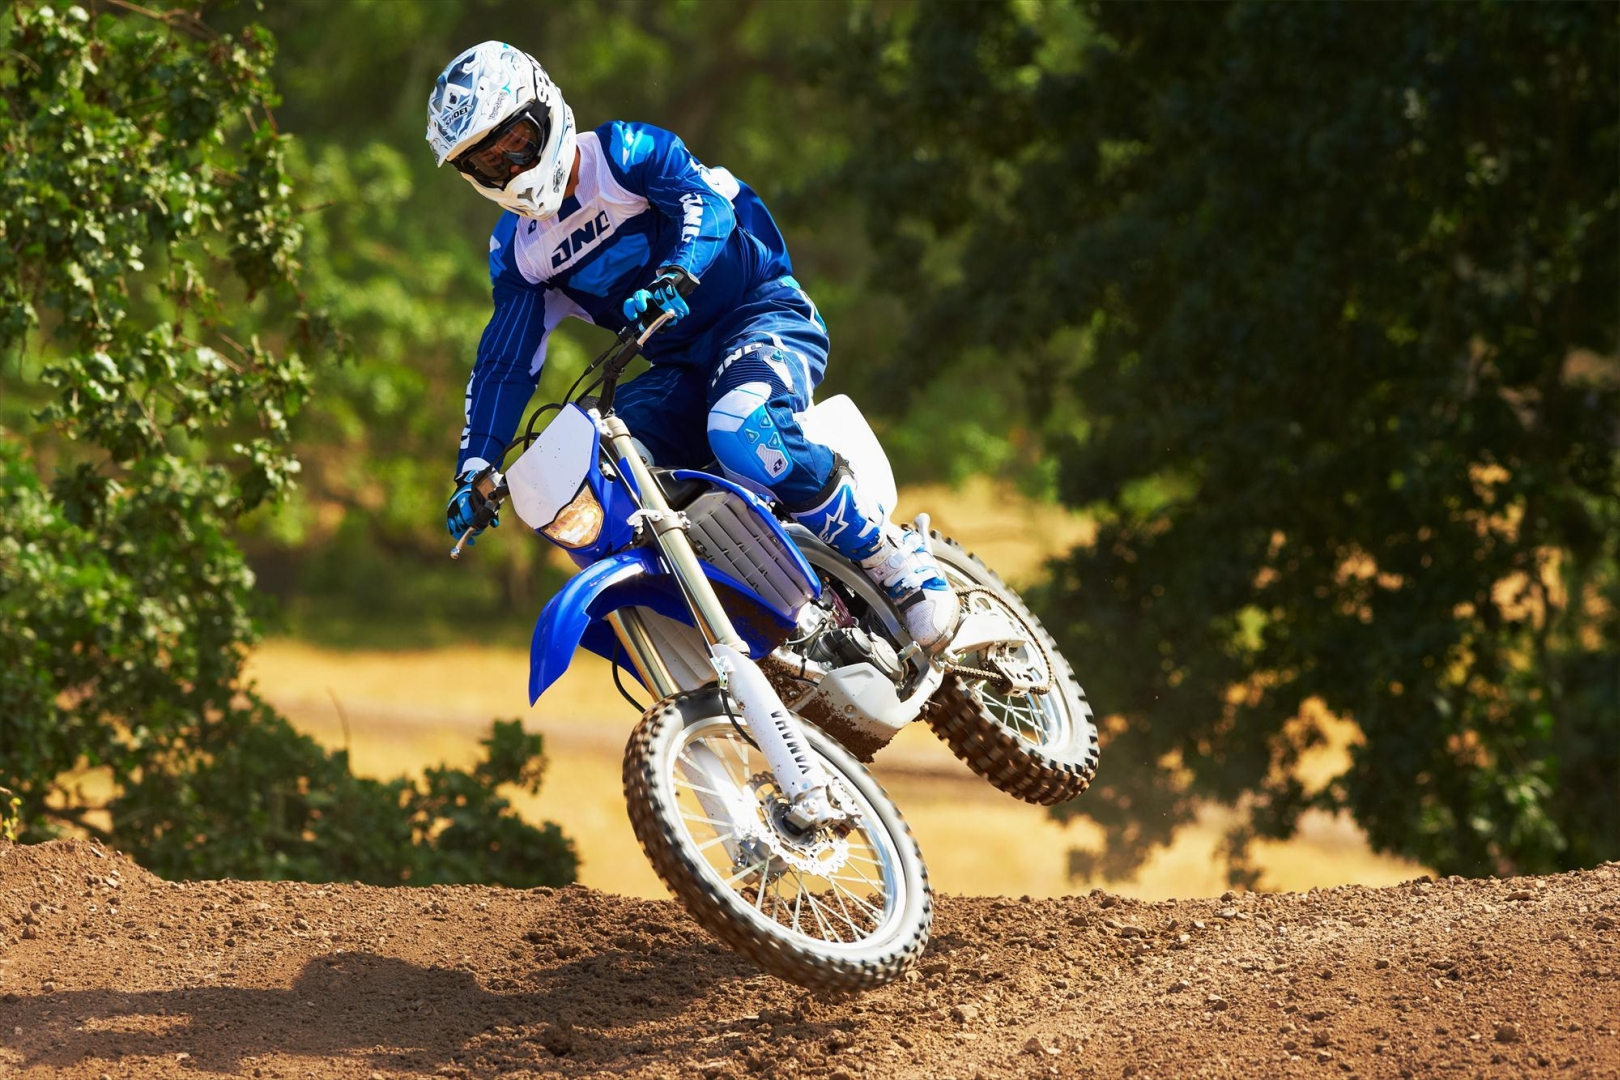 Ford Explorer Off Road >> 2013 Yamaha WR250F, the Fun Off-Road Bike with Racing Attitude - autoevolution